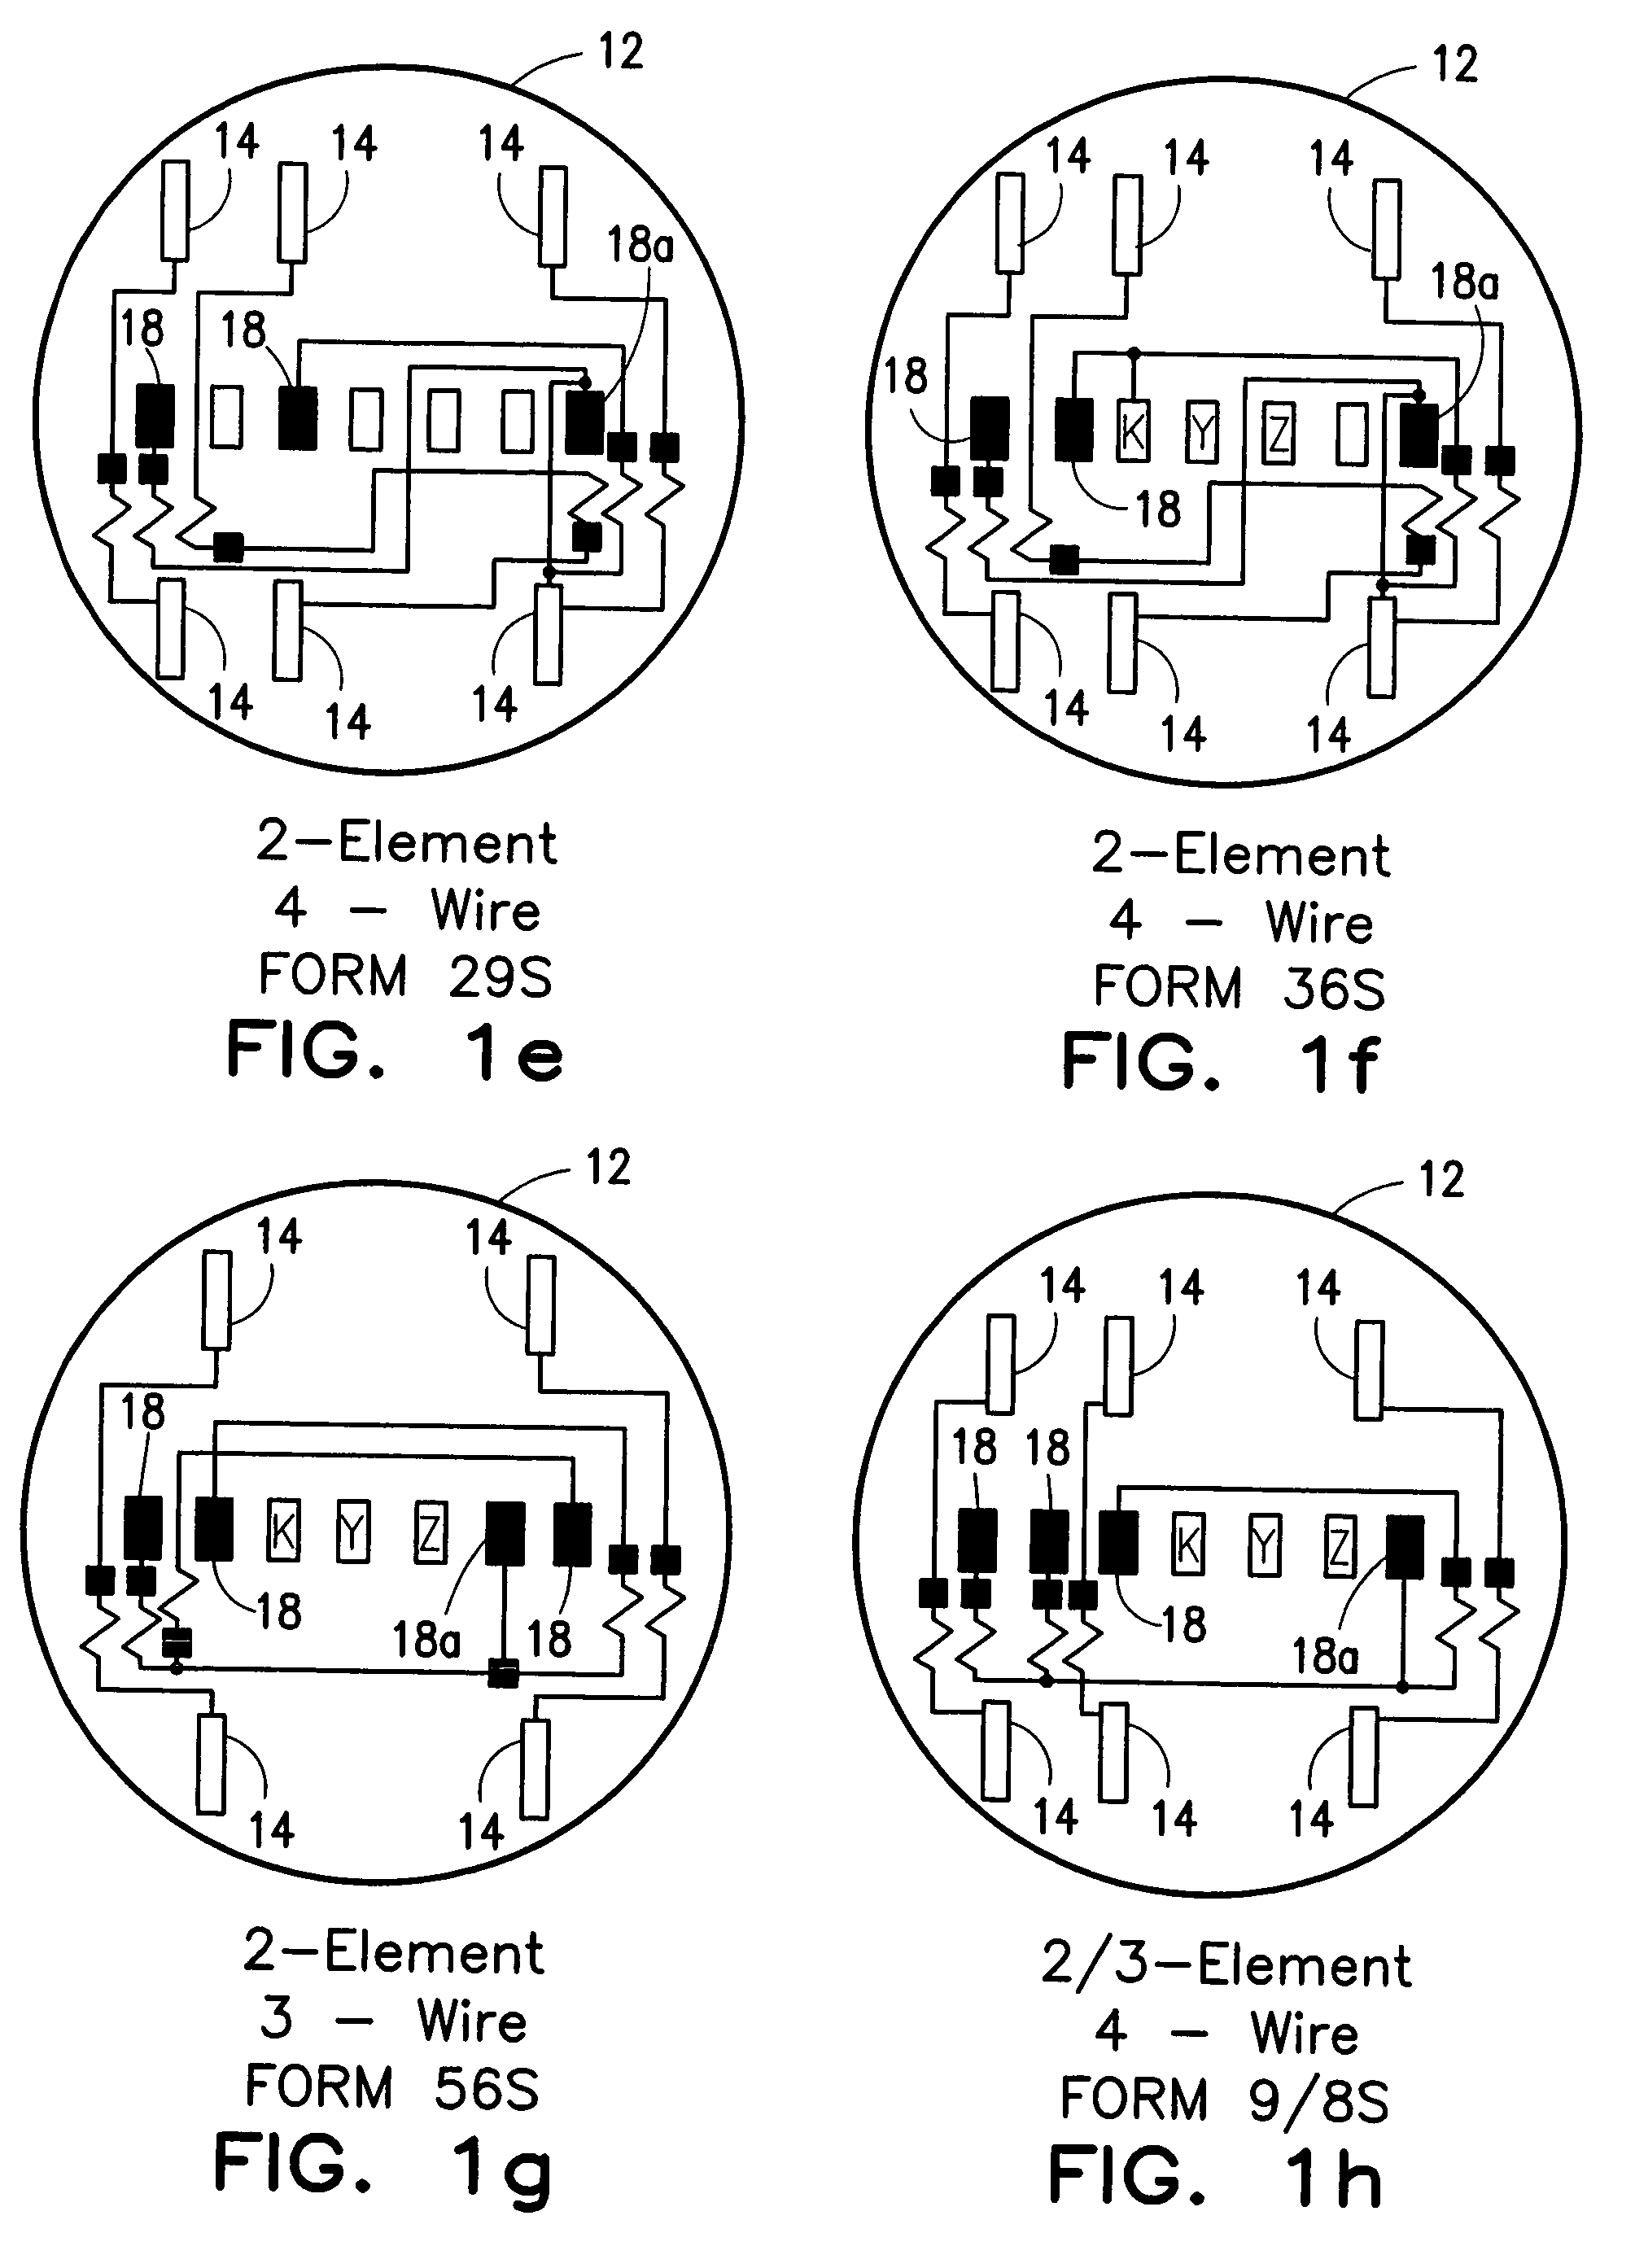 3 Phase Meter Base Wiring Diagram 33 Images For With Cts Us07253605 20070807 D00002 Patent Us7253605 Configurable Utility Connection Interface